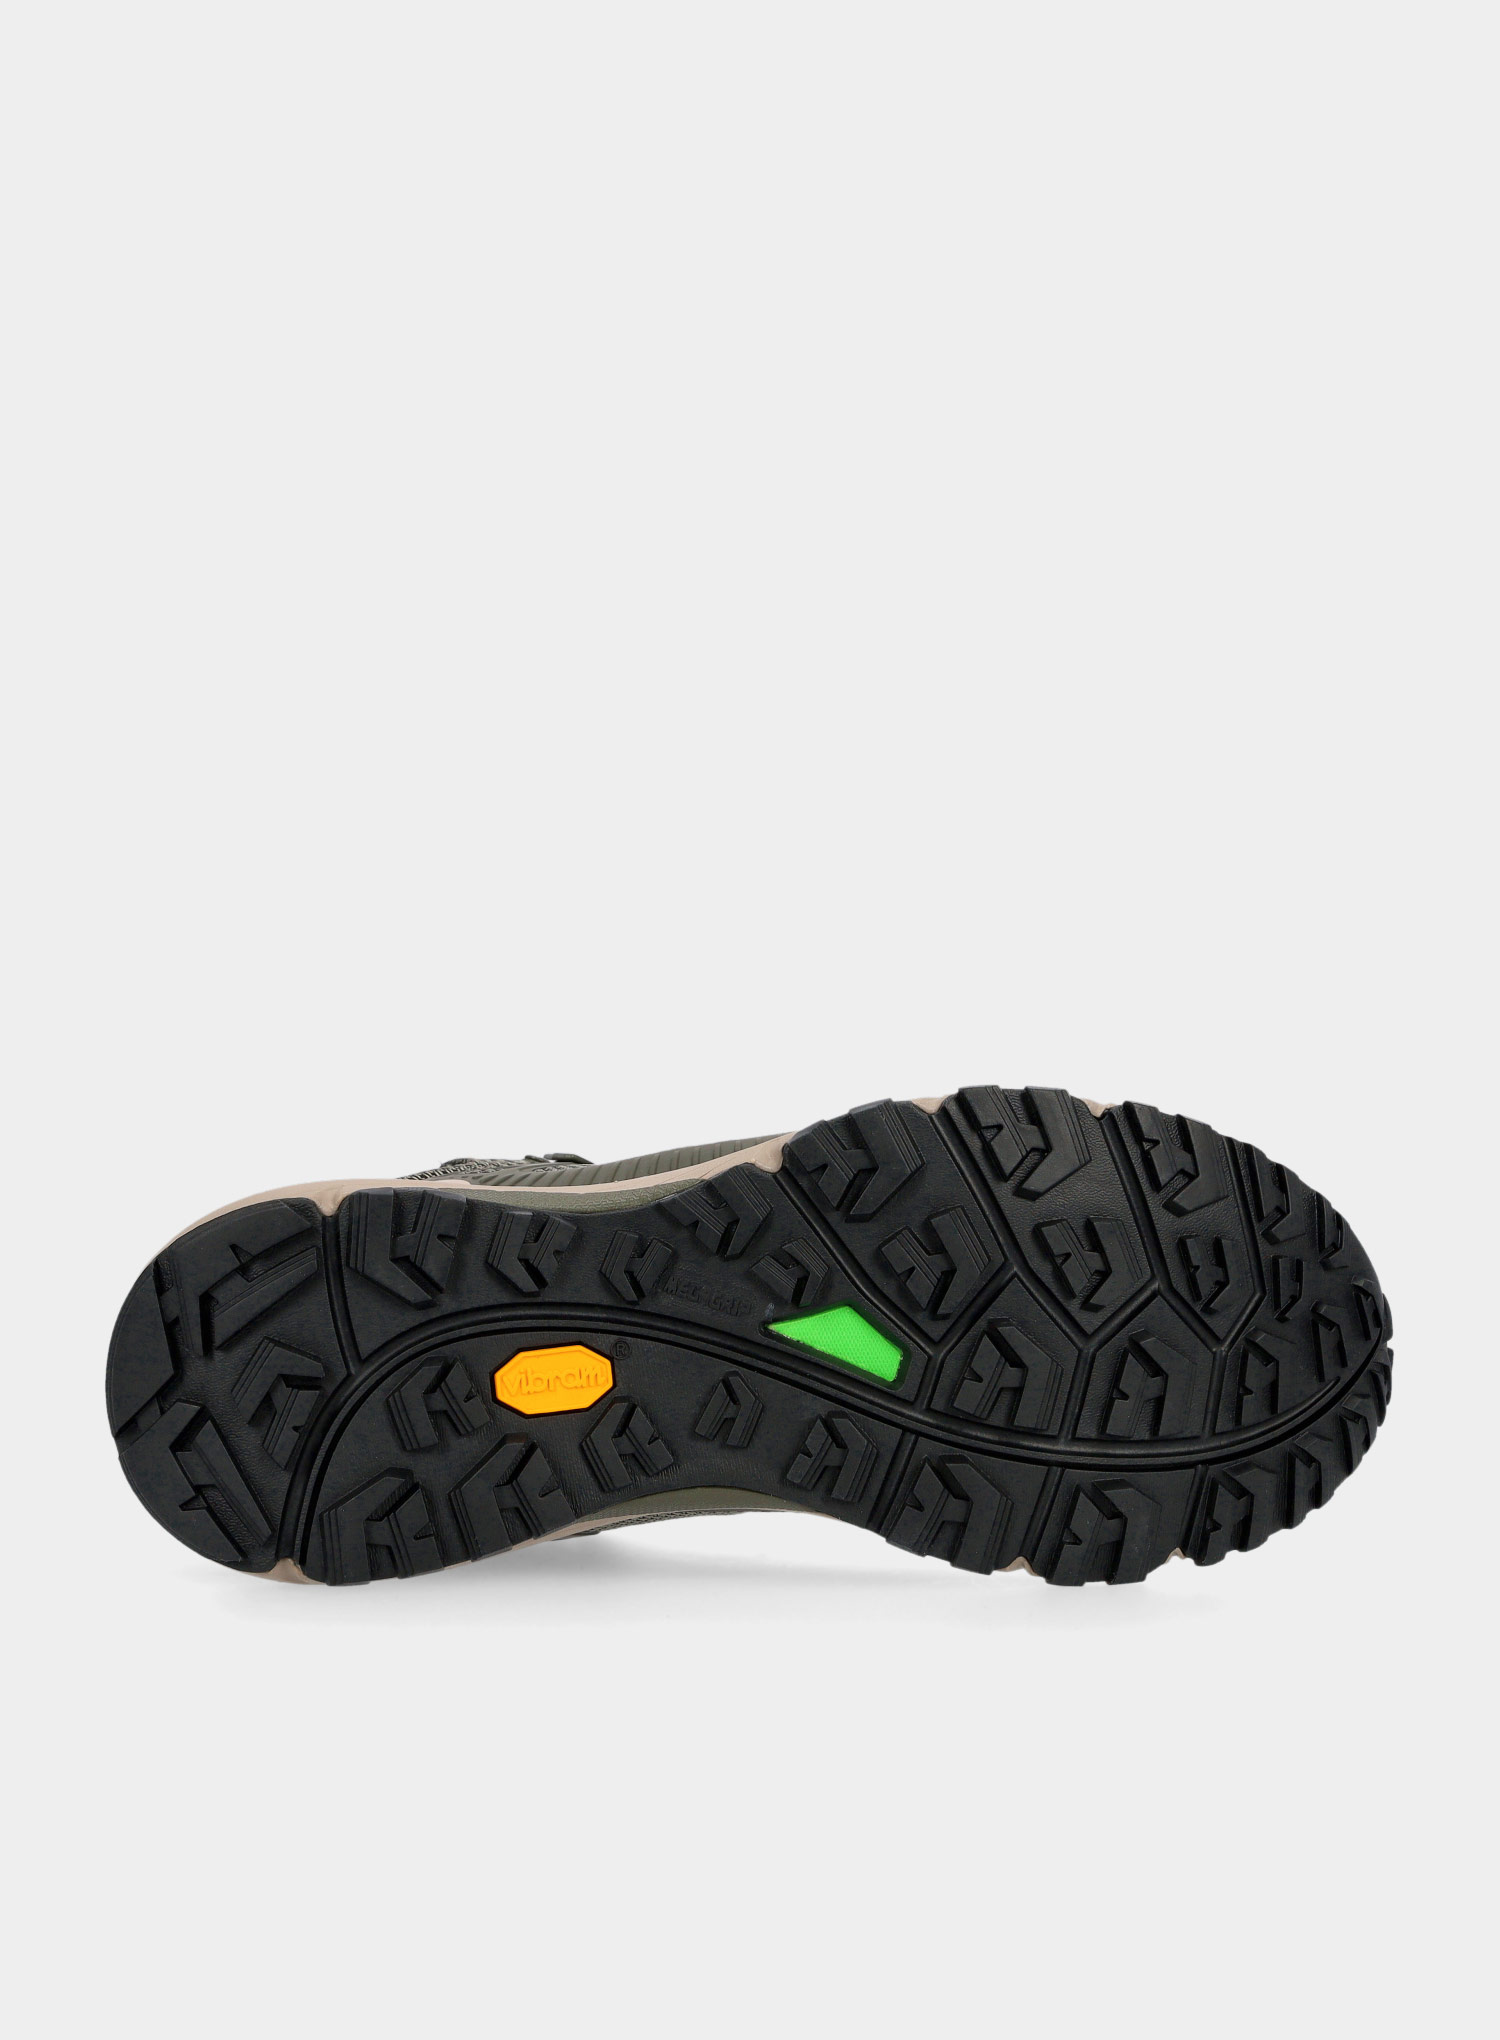 Buty The North Face Ultra Fastpack IV Mid FutureLight - green - zdjęcie nr. 2